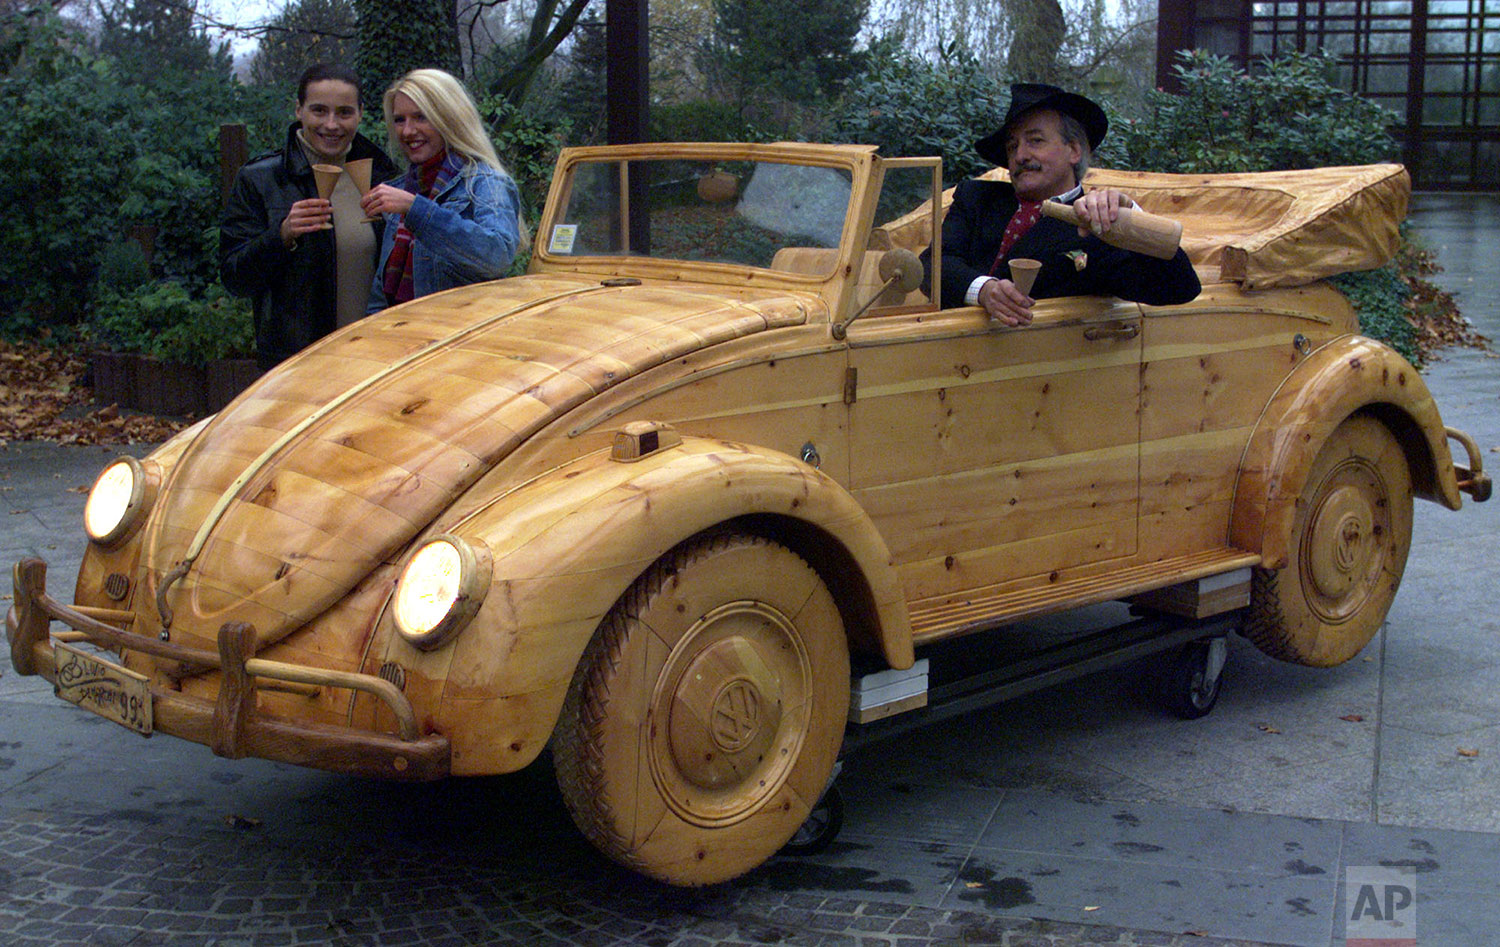 A VW Maggiolino Cabriolet, the famous VW Beetle completly made of wood, is shown by Italian artist Livio De Marchi, Nov. 17, 1999 in Essen, Germany.  (AP Photo/Karl-Heinz Kreifelts)